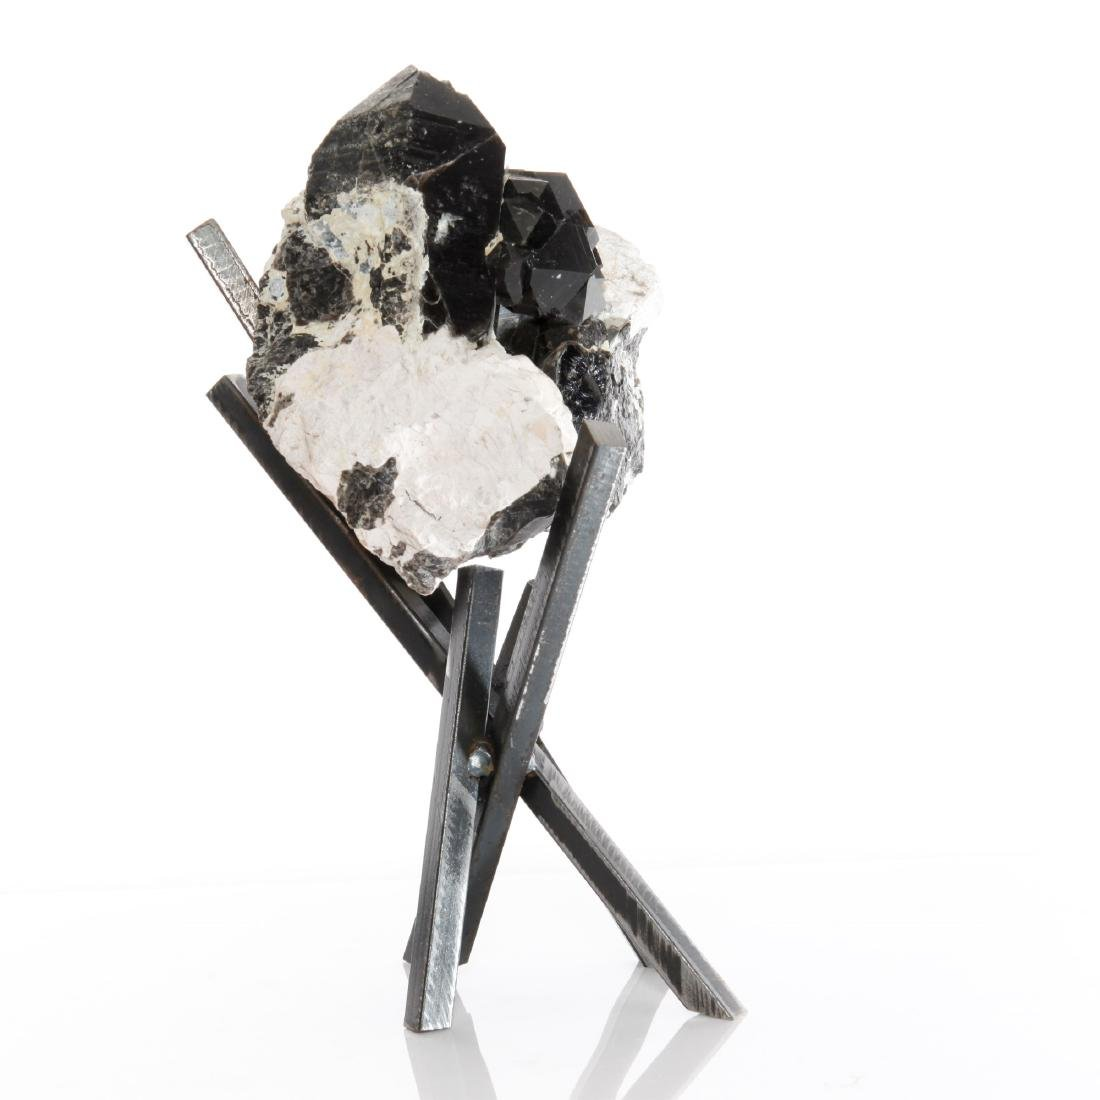 Tibetan Black Quartz Crystal Cluster on Metal Base